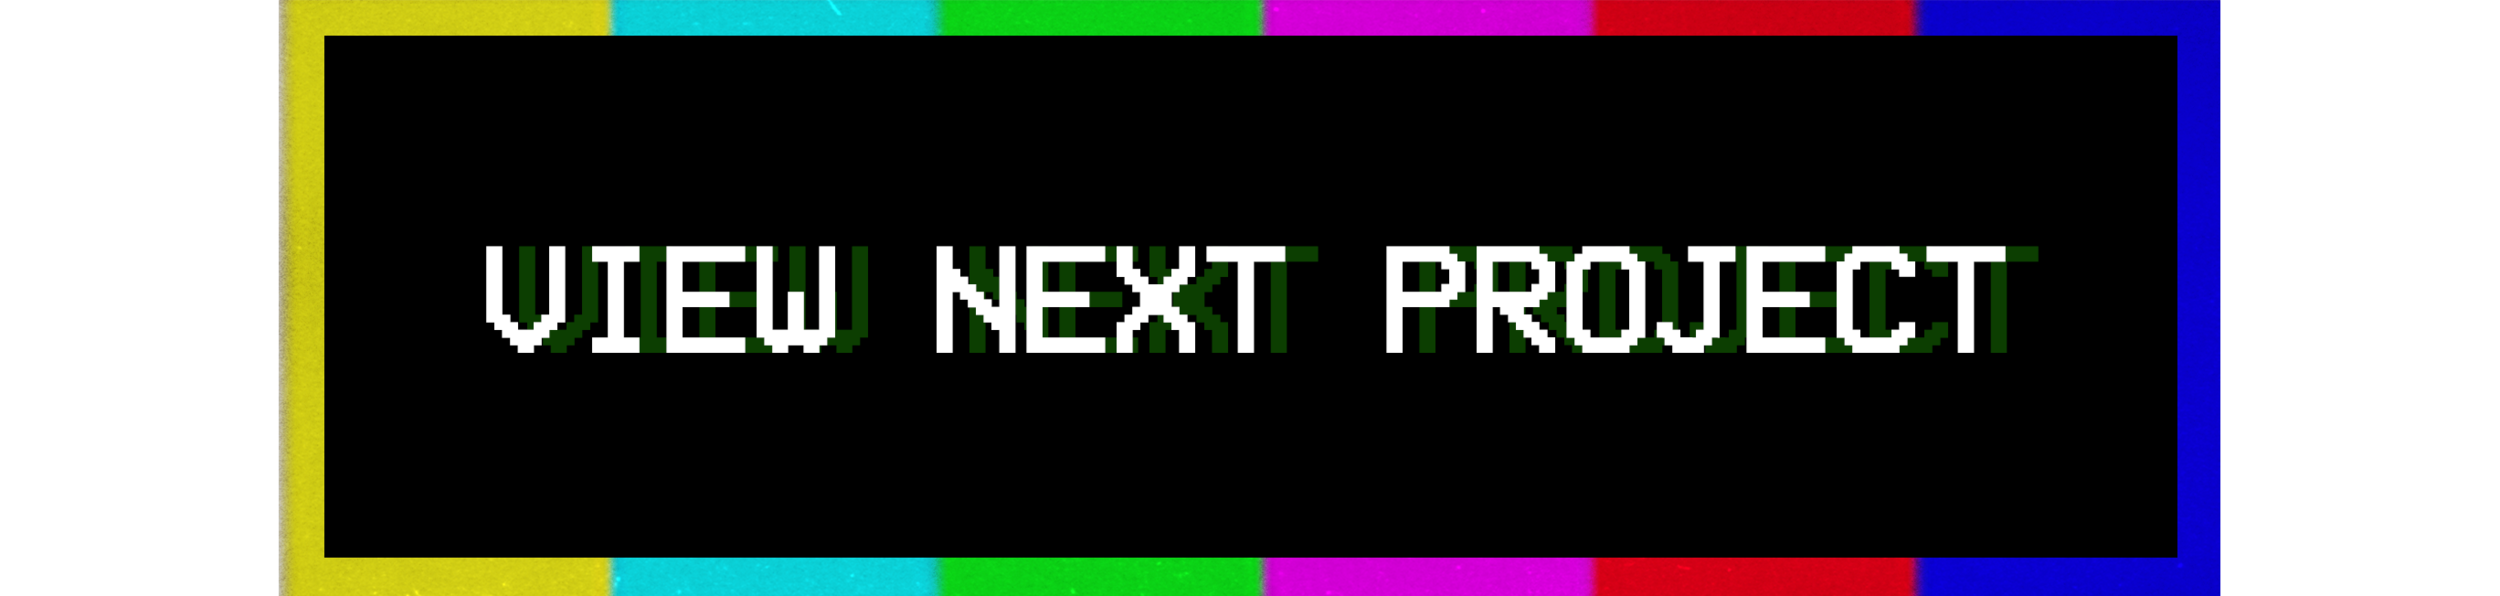 NEXT-PROJECT.png